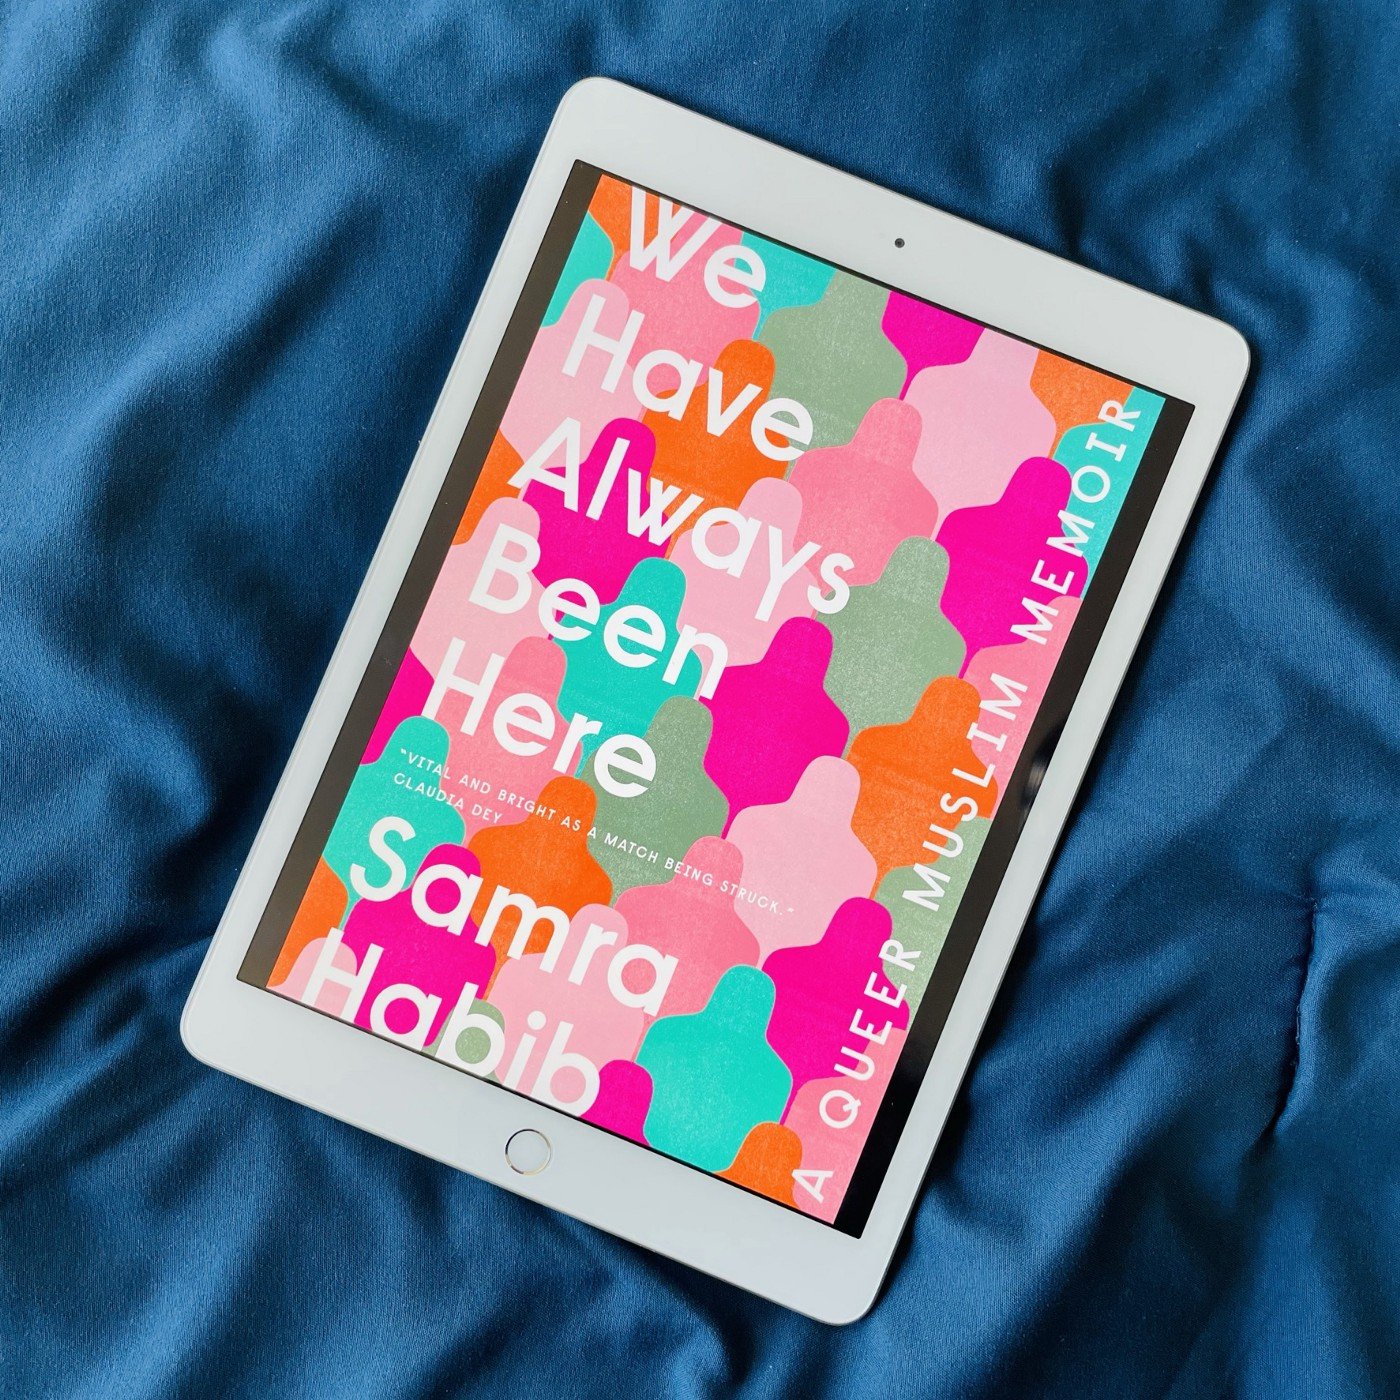 Kindle e-reader on a satin, navy fabric, showing the cover of 'We have always been here', a queer memoir.